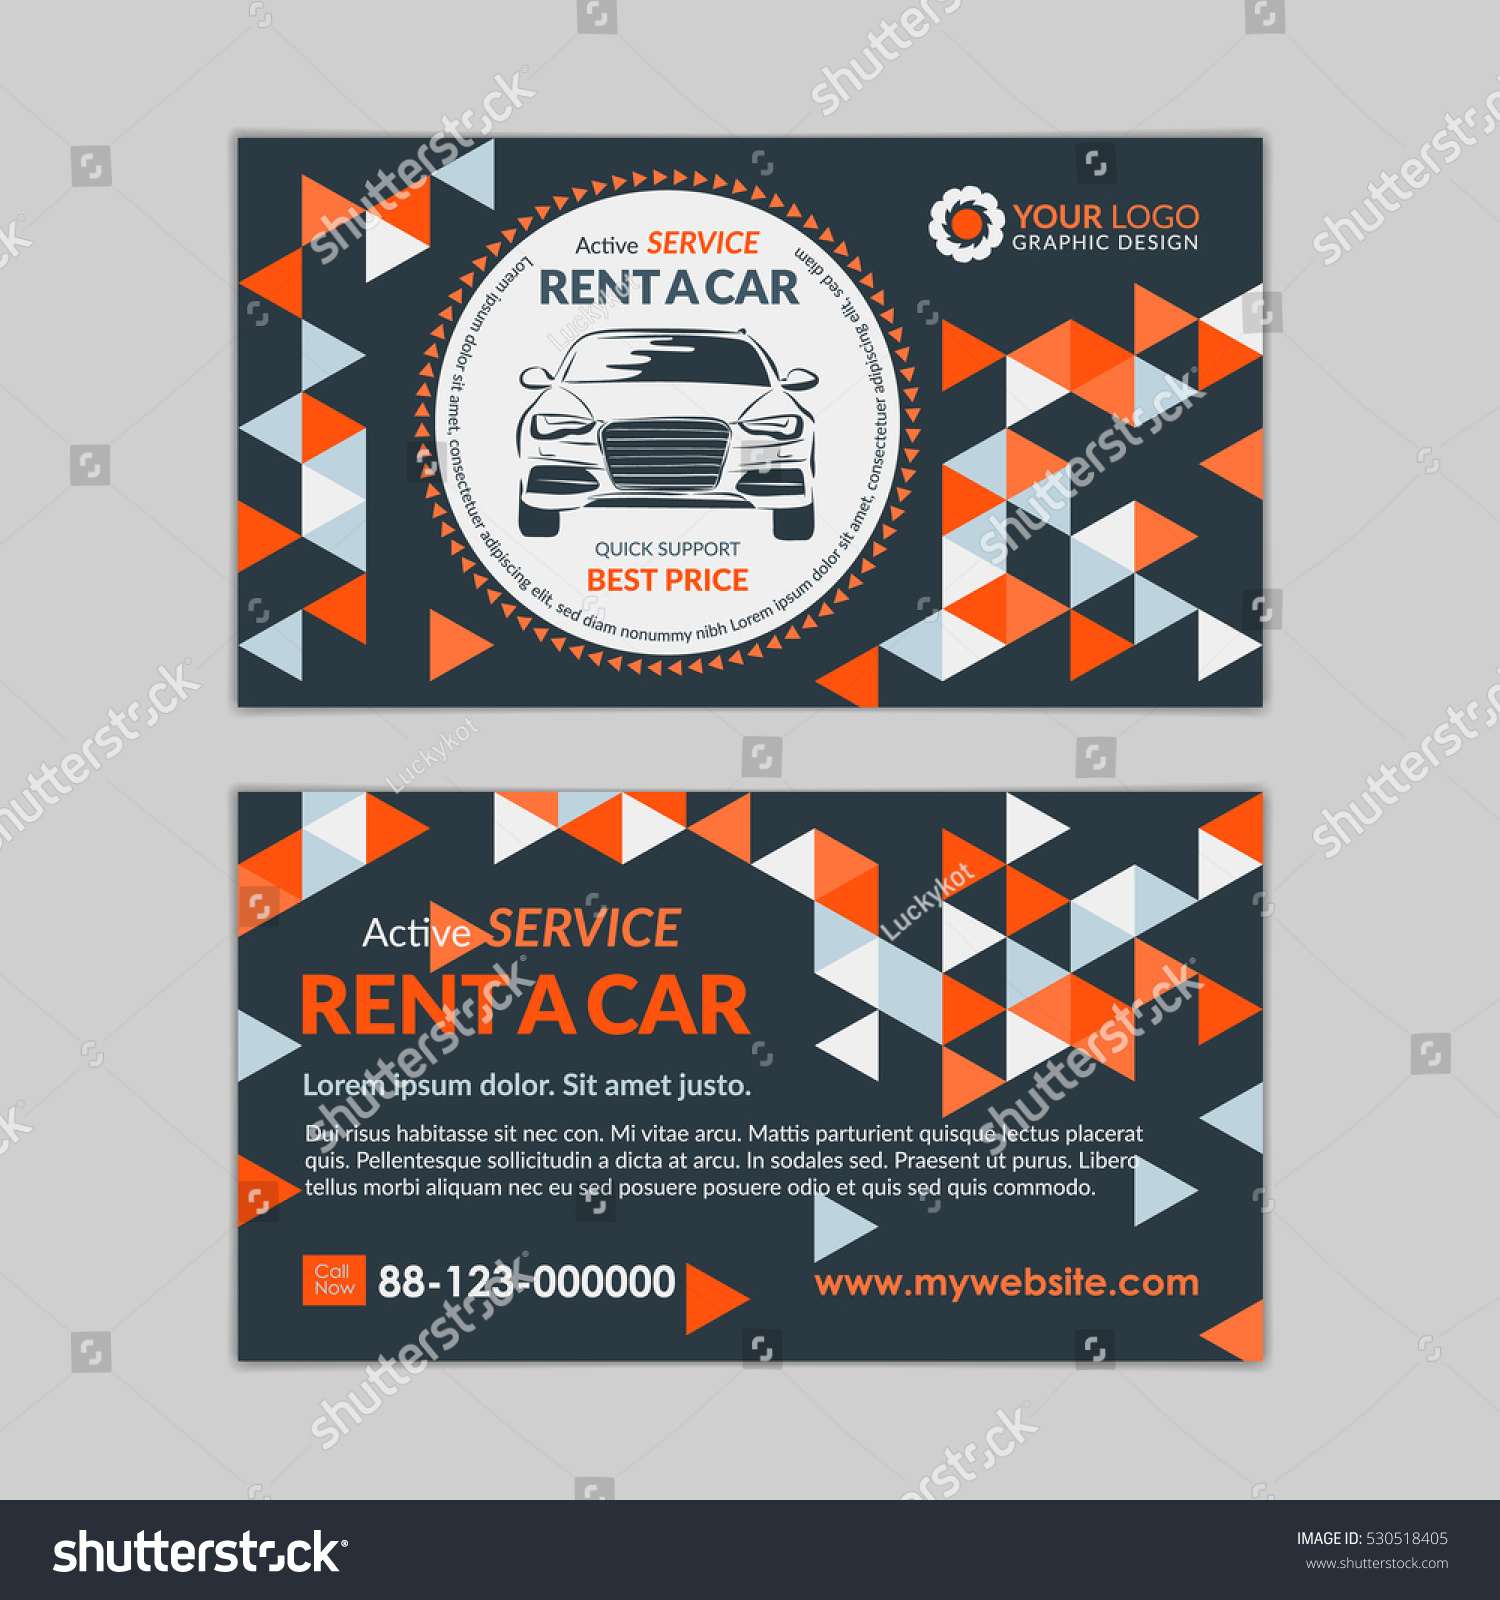 Rent Car Business Card Template Abstract Stock Vector